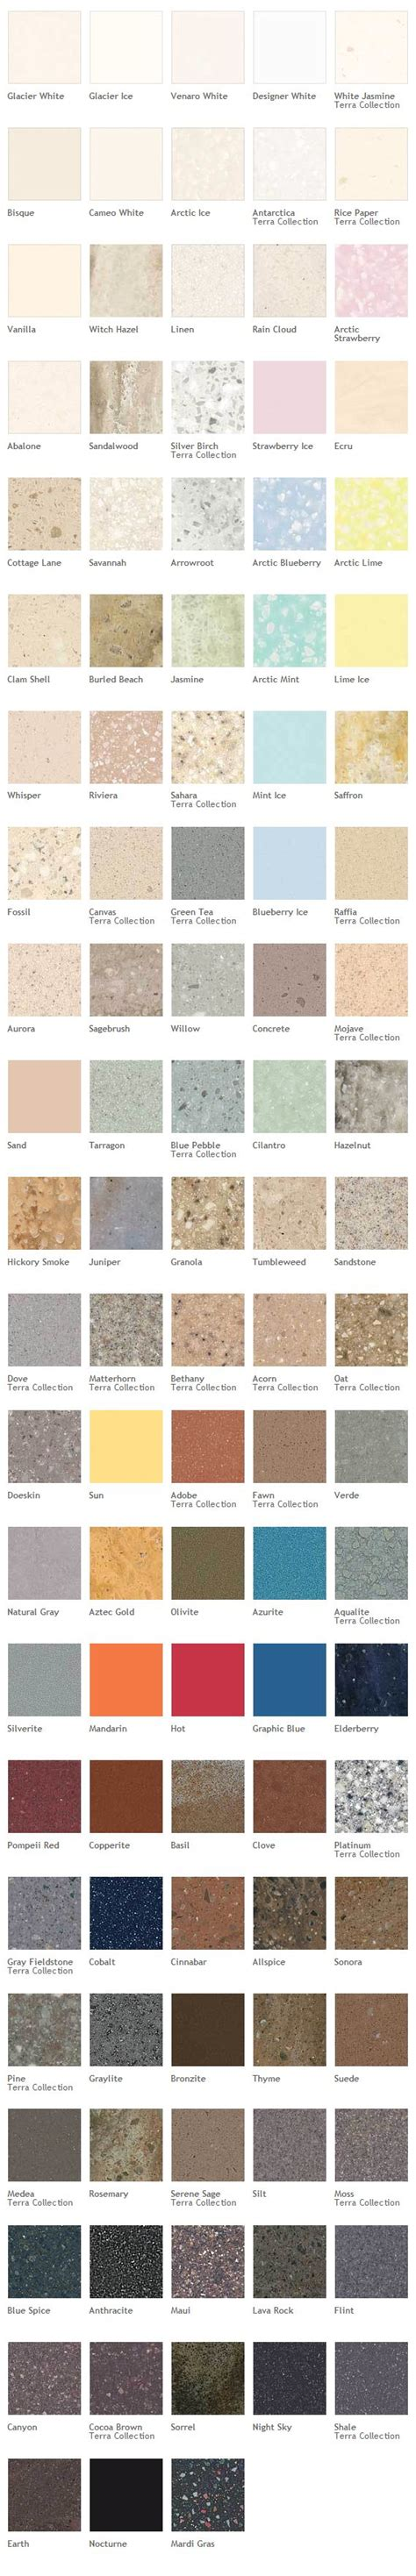 corian countertop colors we picked medea for our countertop i can t wait to see it